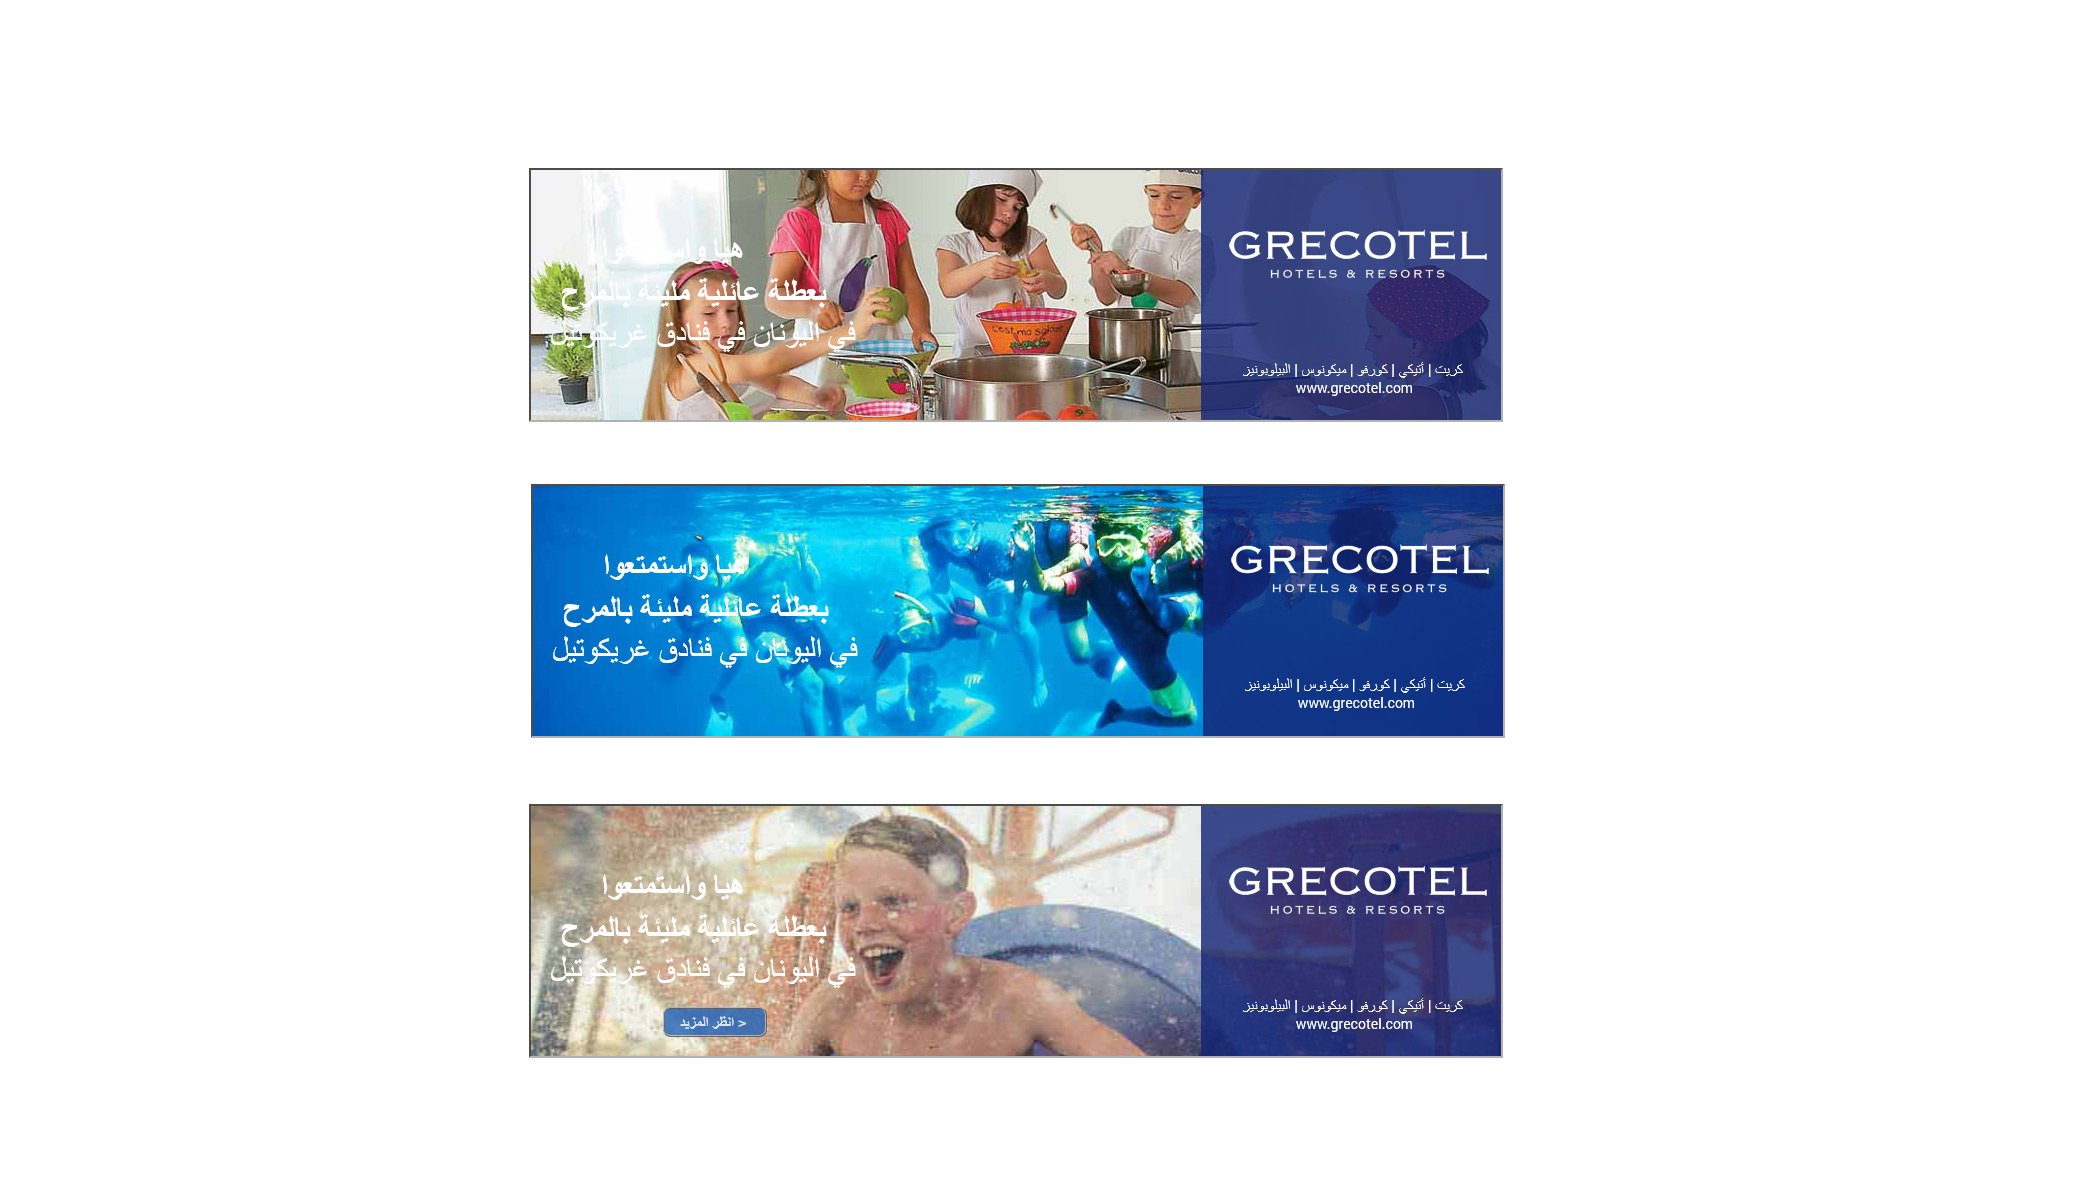 GRECOTEL Online Campaign Web Banners